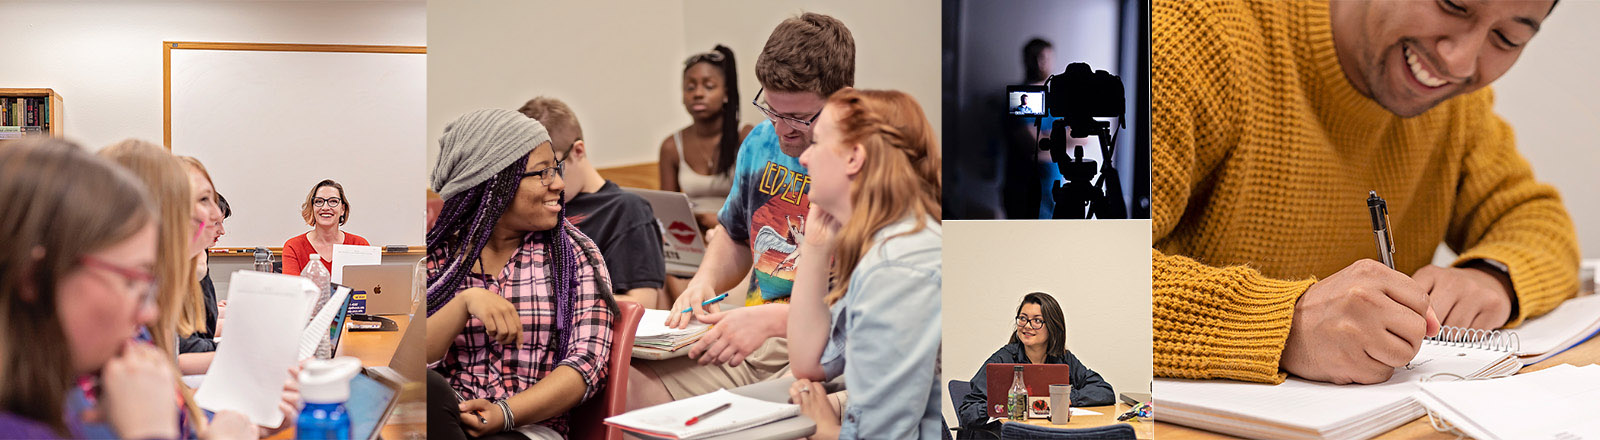 A collage of images of actual English students and instructors in actual English classrooms at UNC.